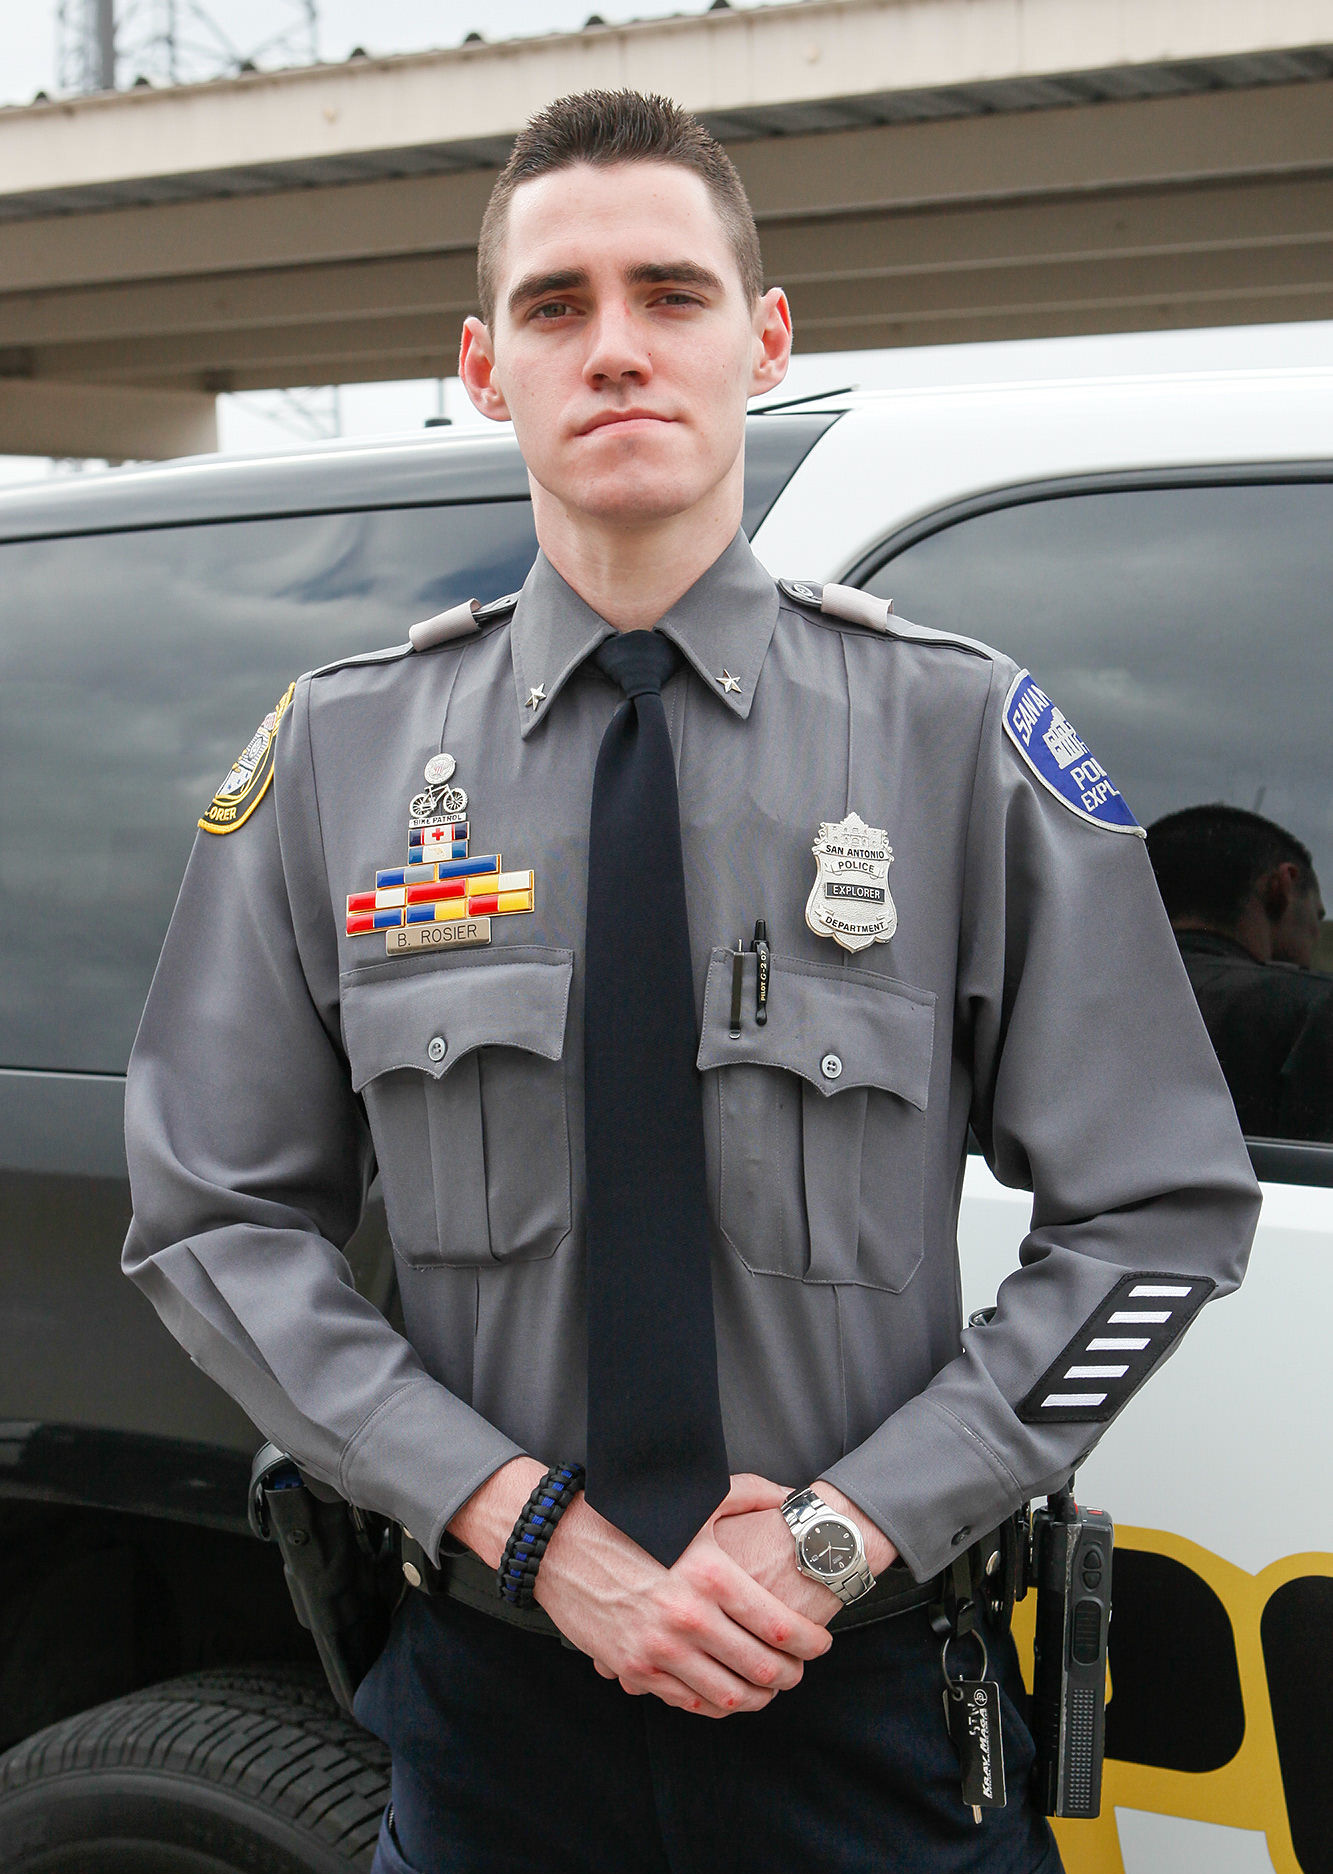 Explorer honored for saving woman's life during last year's